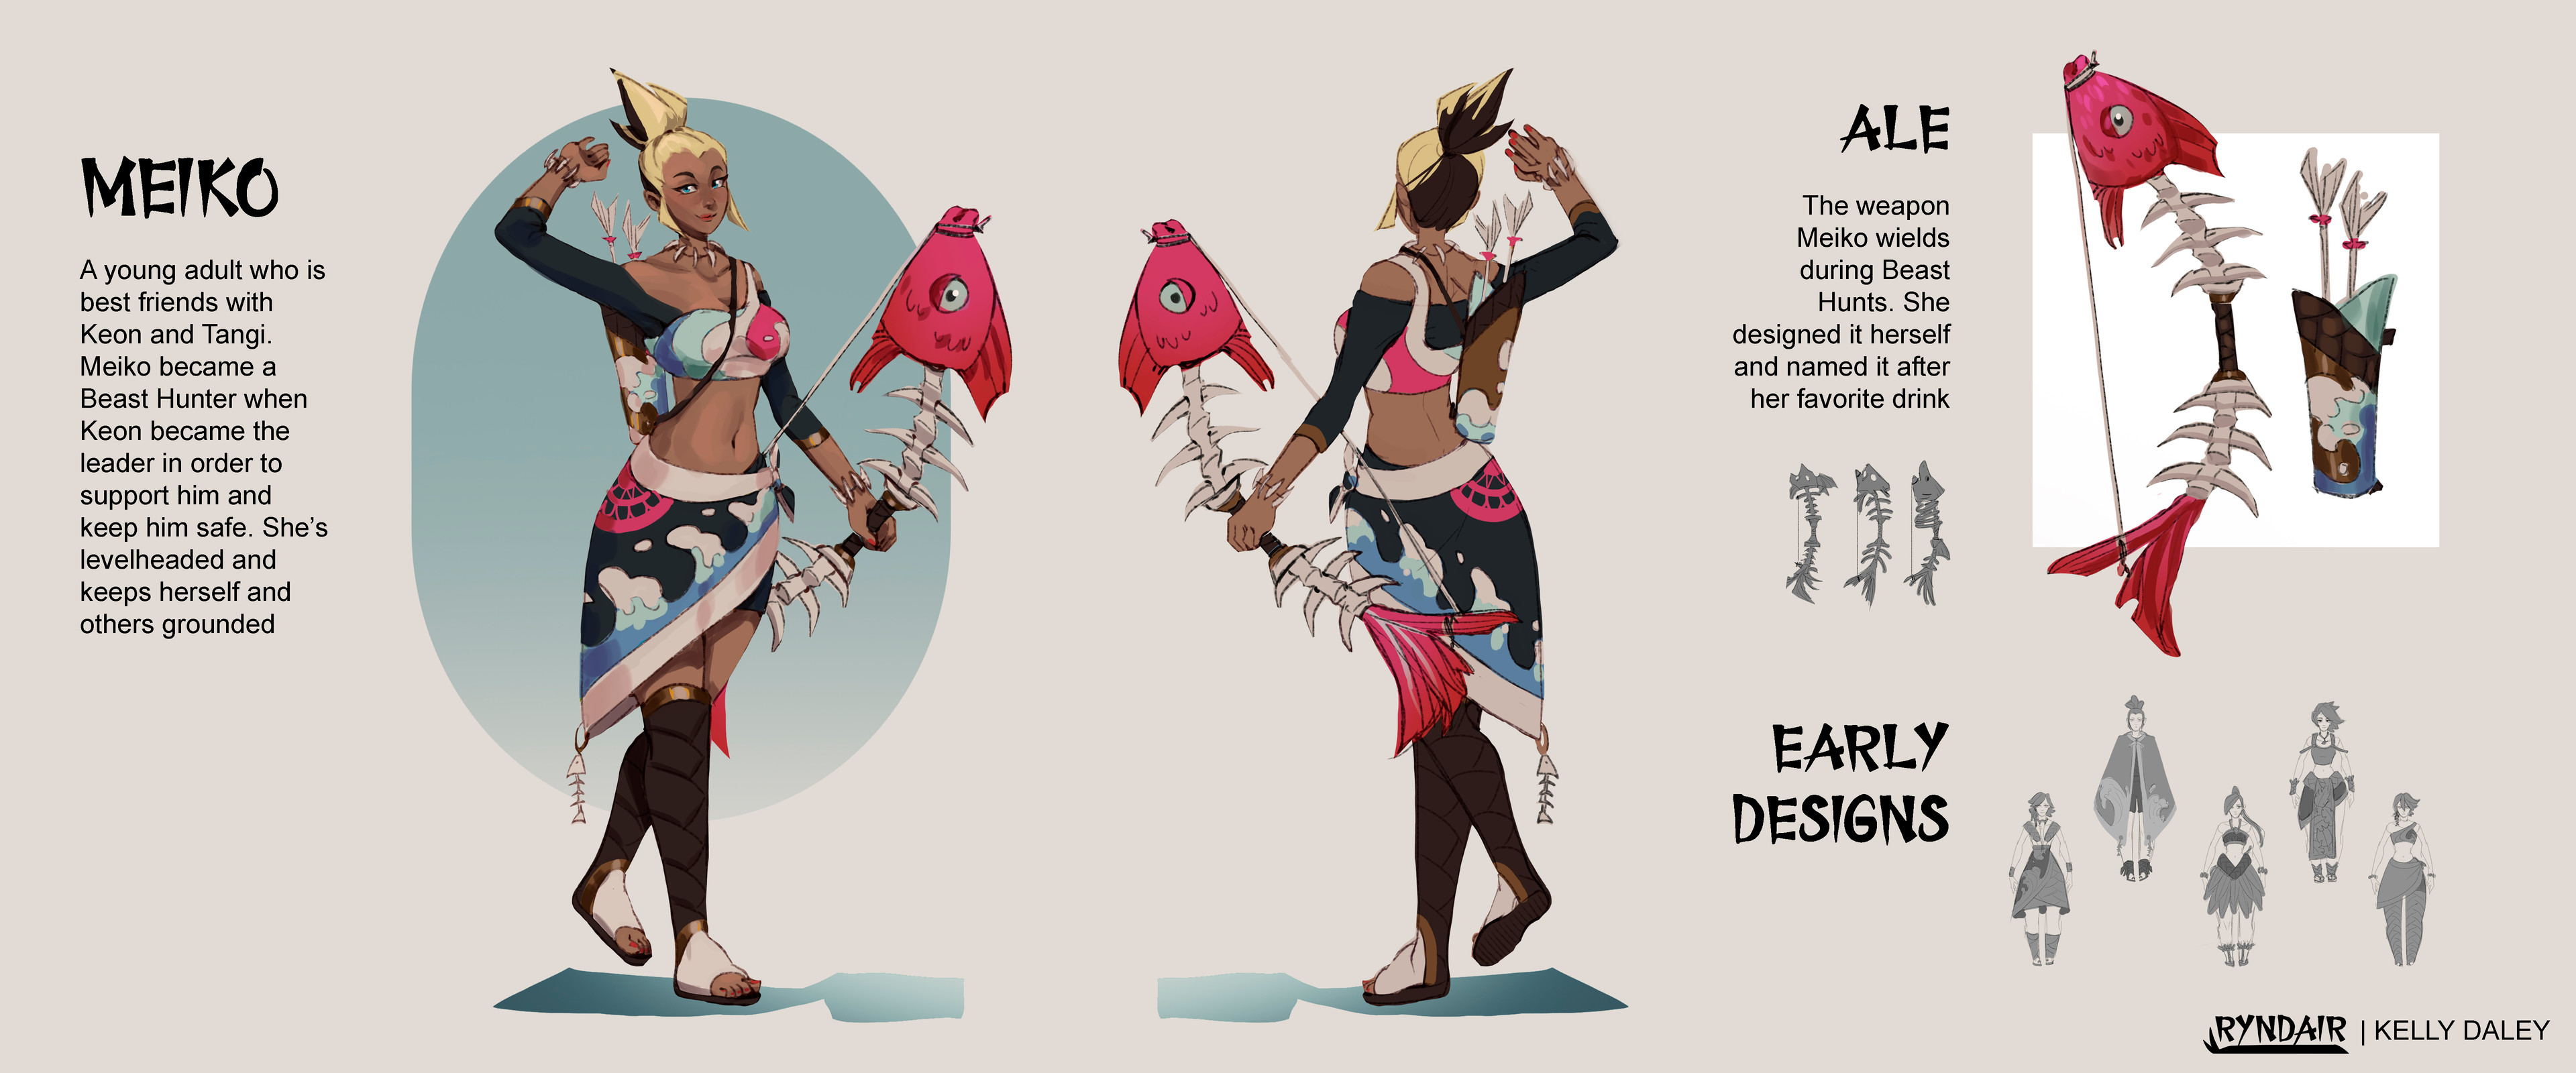 Meiko Character Sheet. My goal with Meiko was to create a pretty but badass design. I achieved that through bold colors and sharp shapes. She also has the most skin coverage out of the trio out of her dislike for the sun.